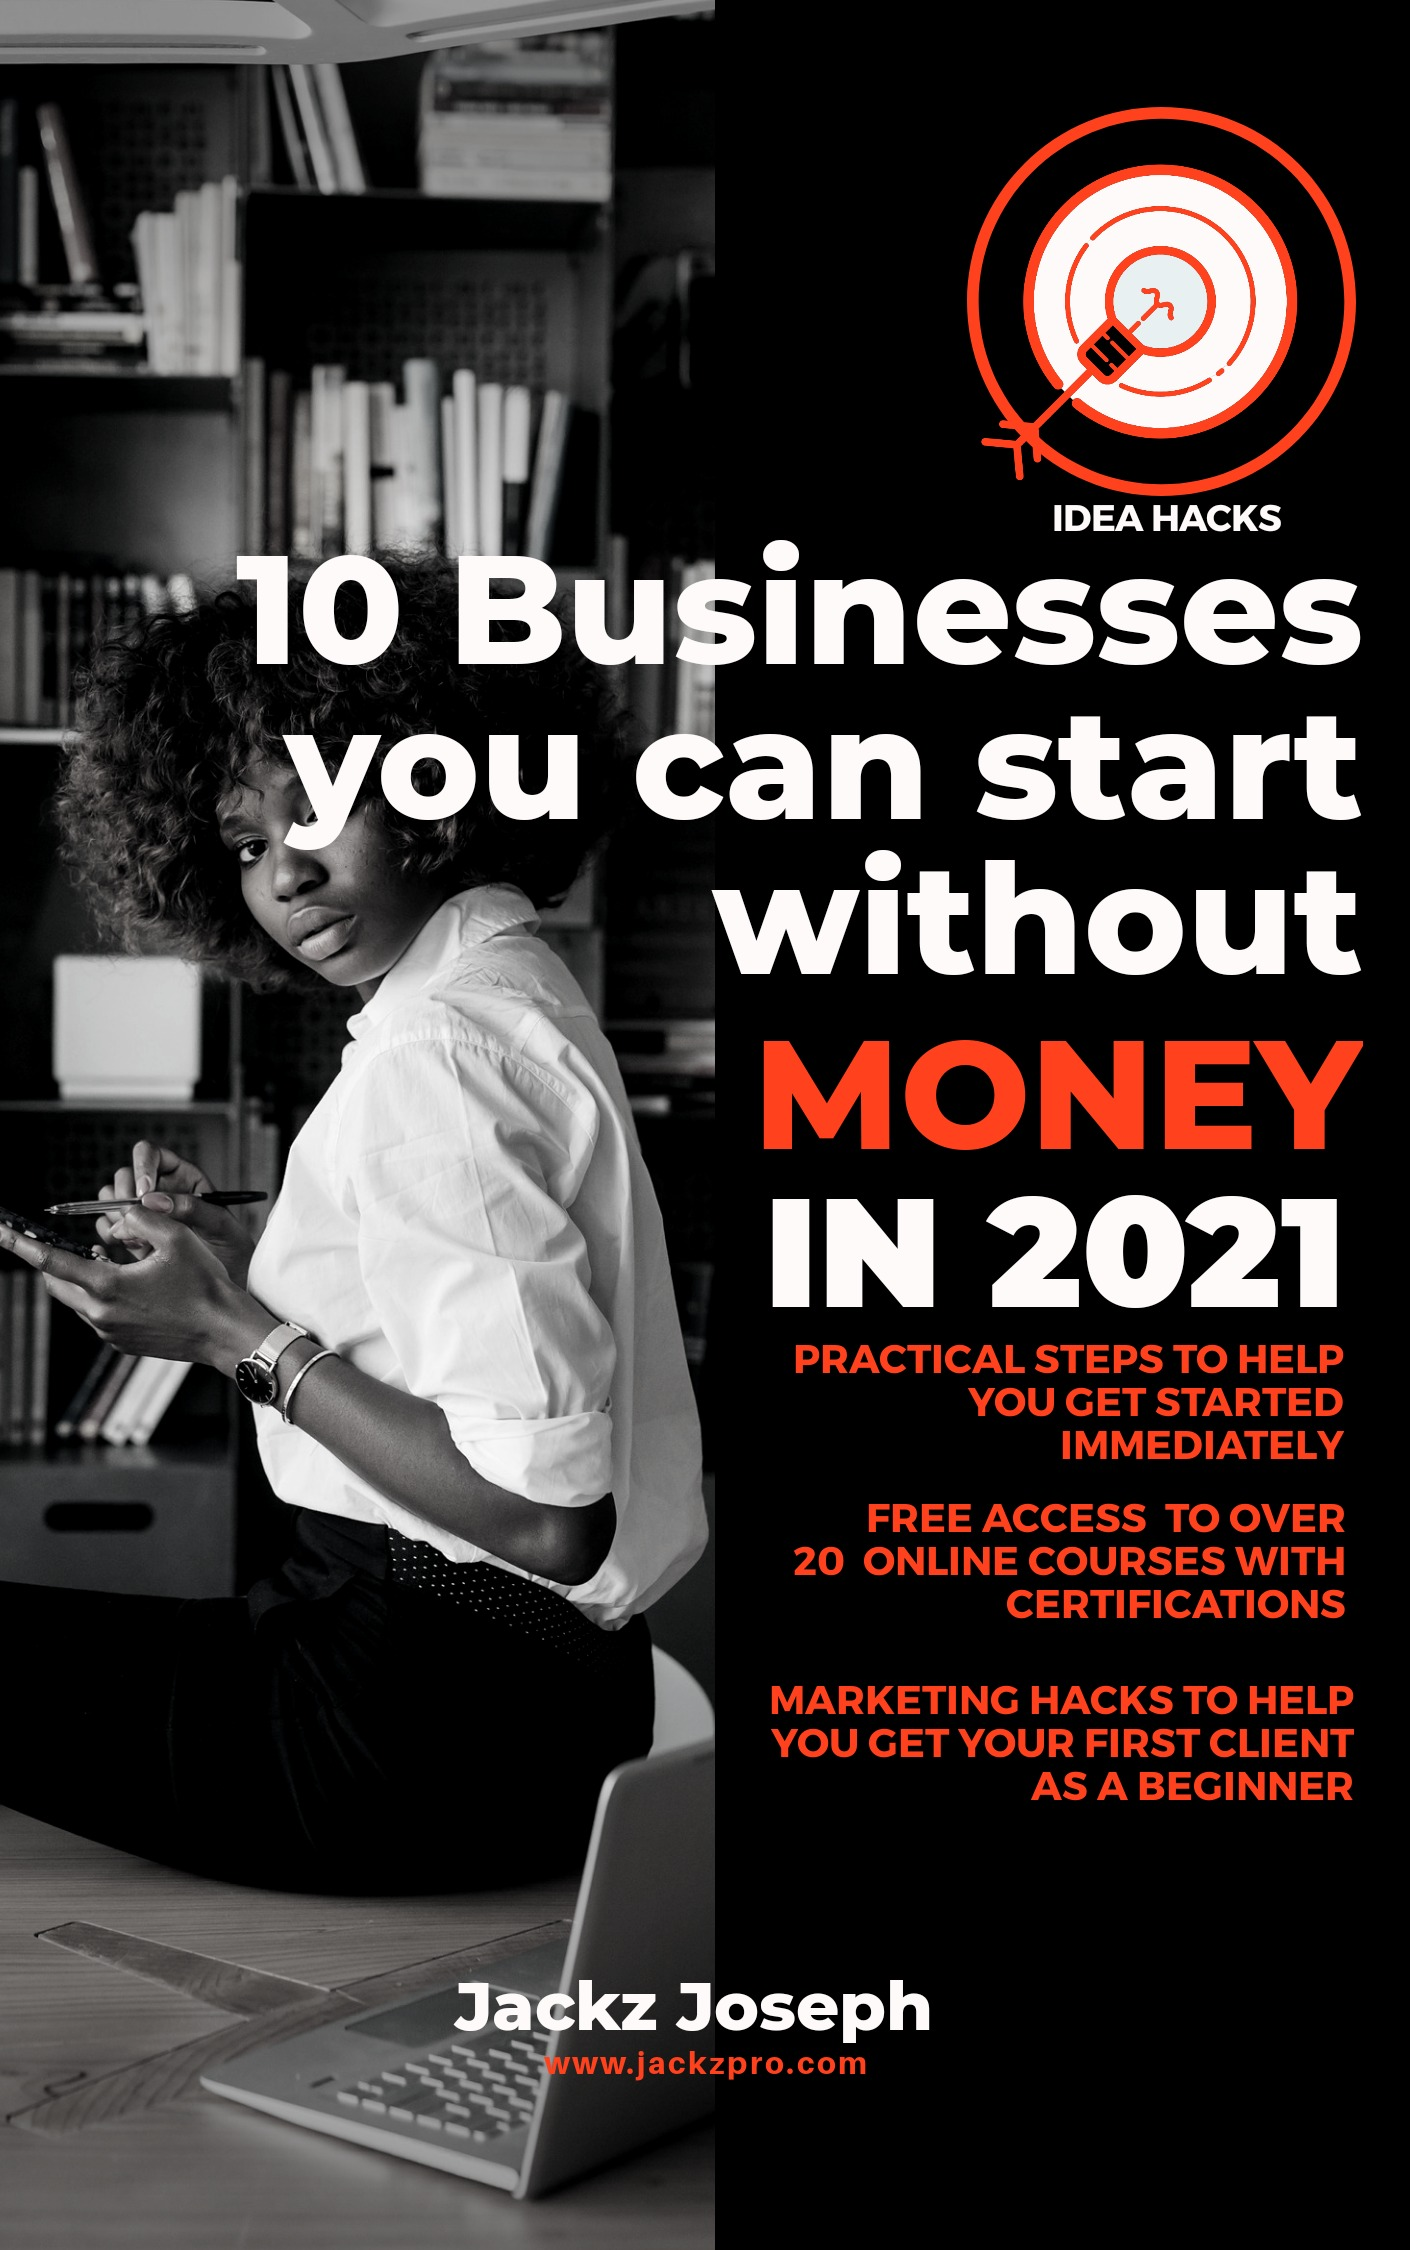 10 Businesses you can start without money